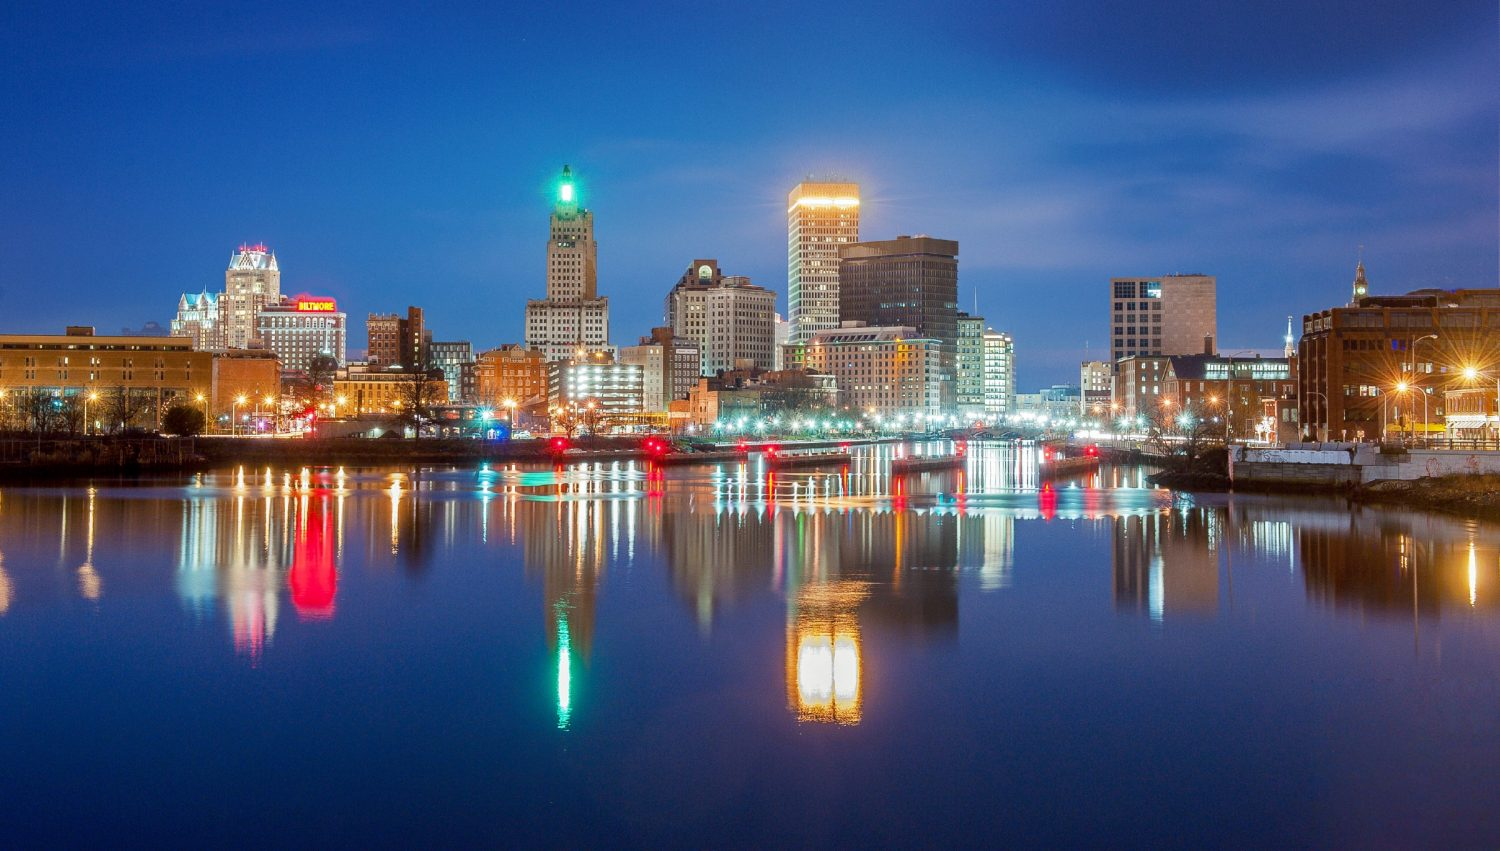 The skyline of Providence, Rhode Island. Image: Yiming Chen/Getty Images